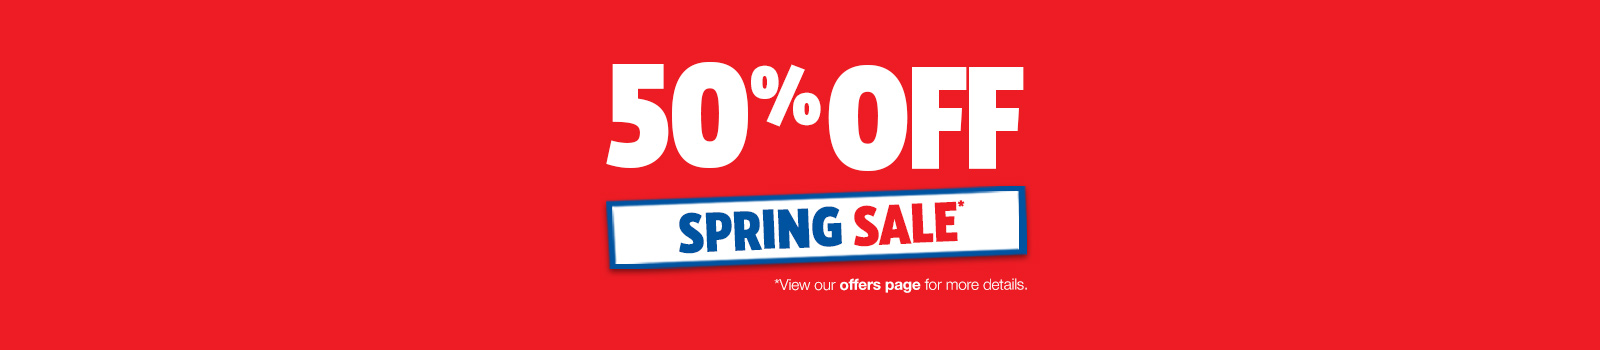 50% off in our spring sale